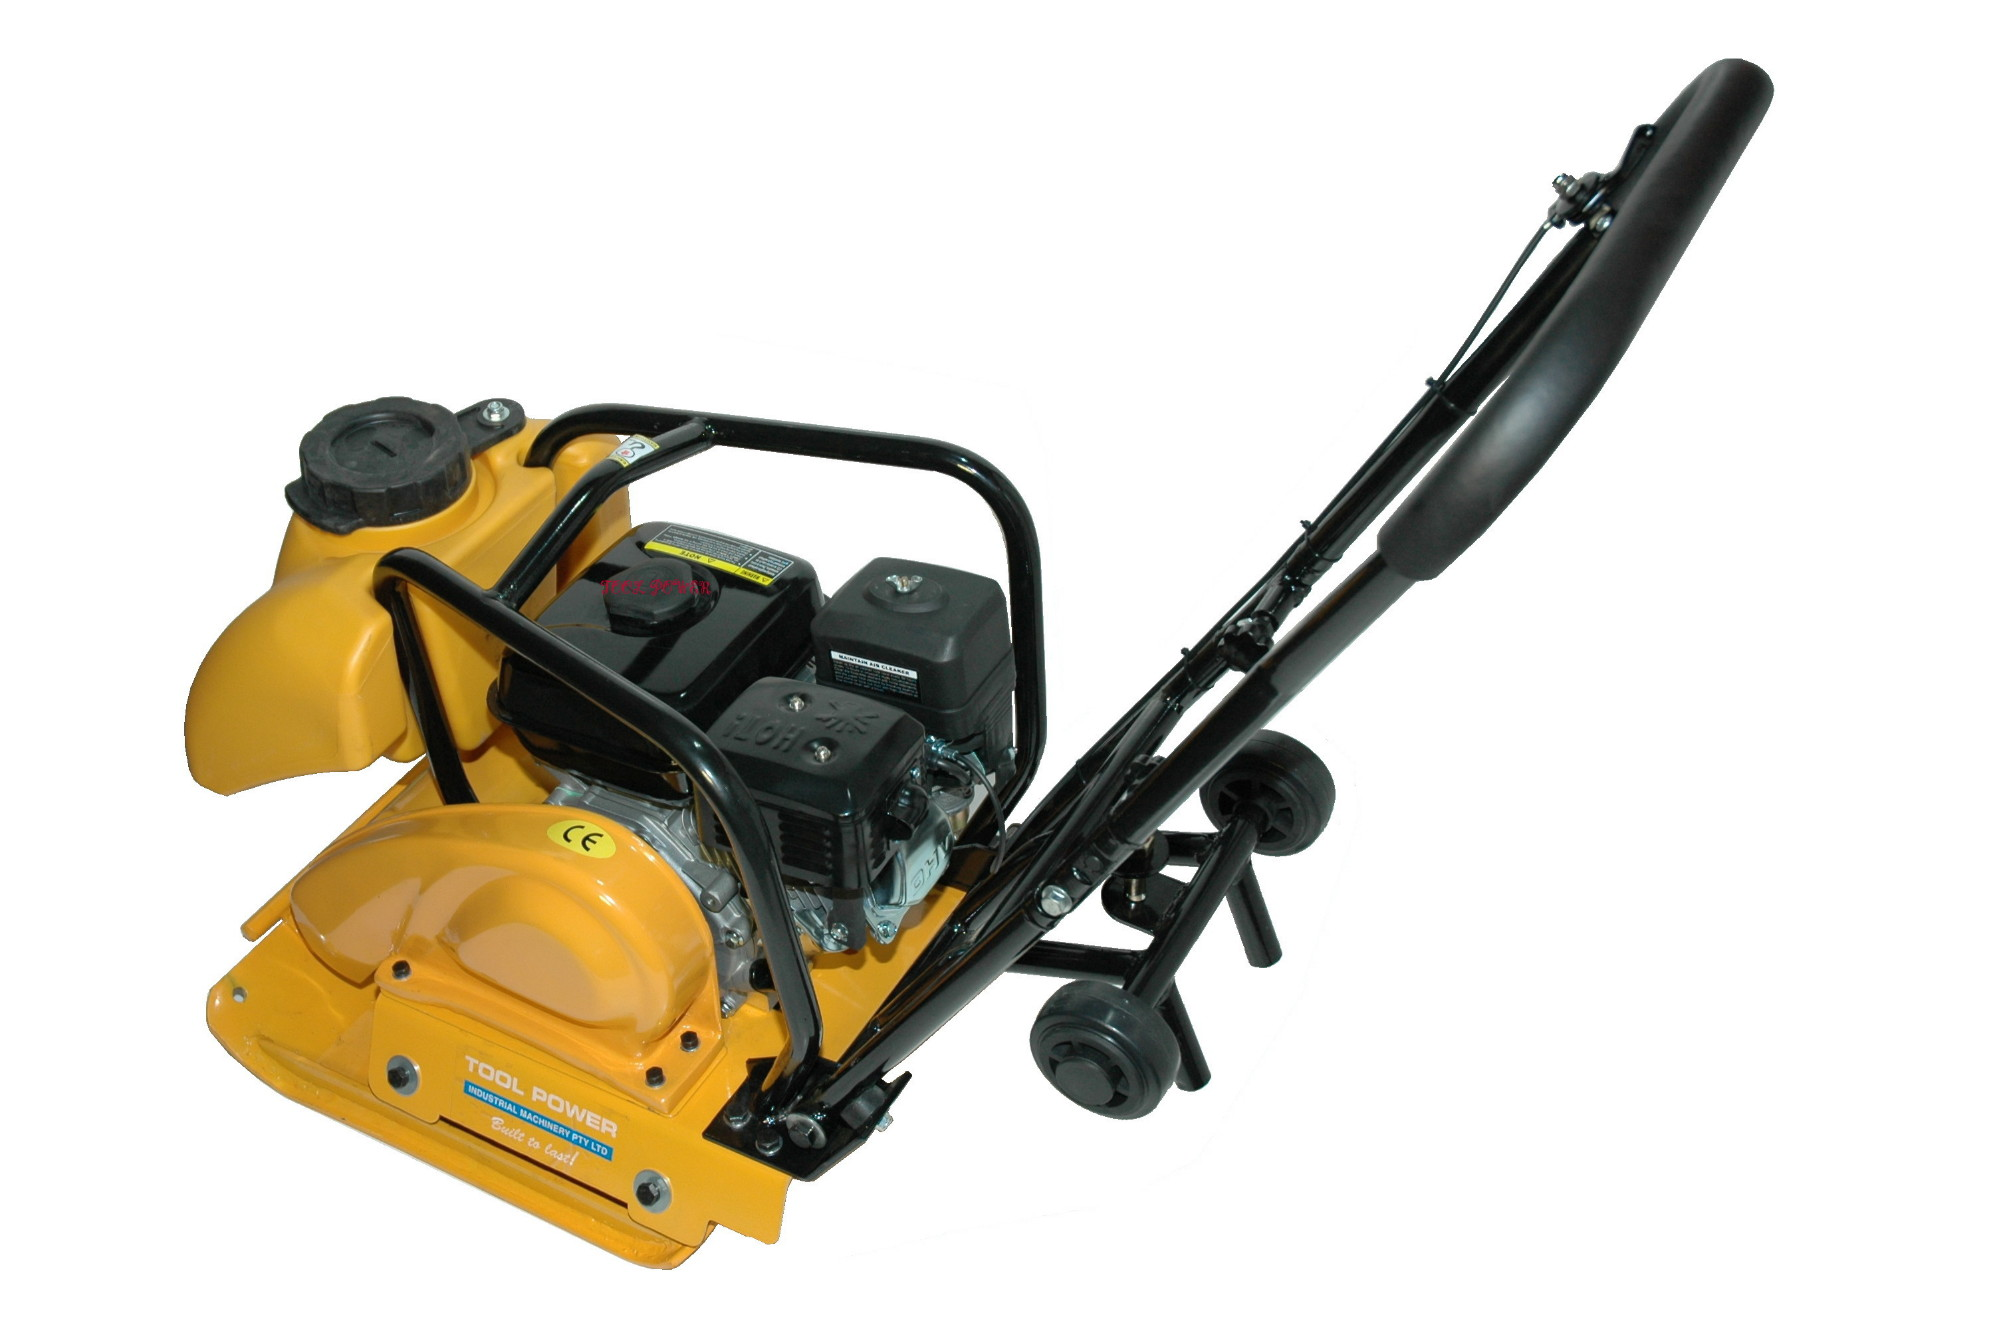 Compactor wet & dry LIFAN 6.5-hp extreme quality engine -1325